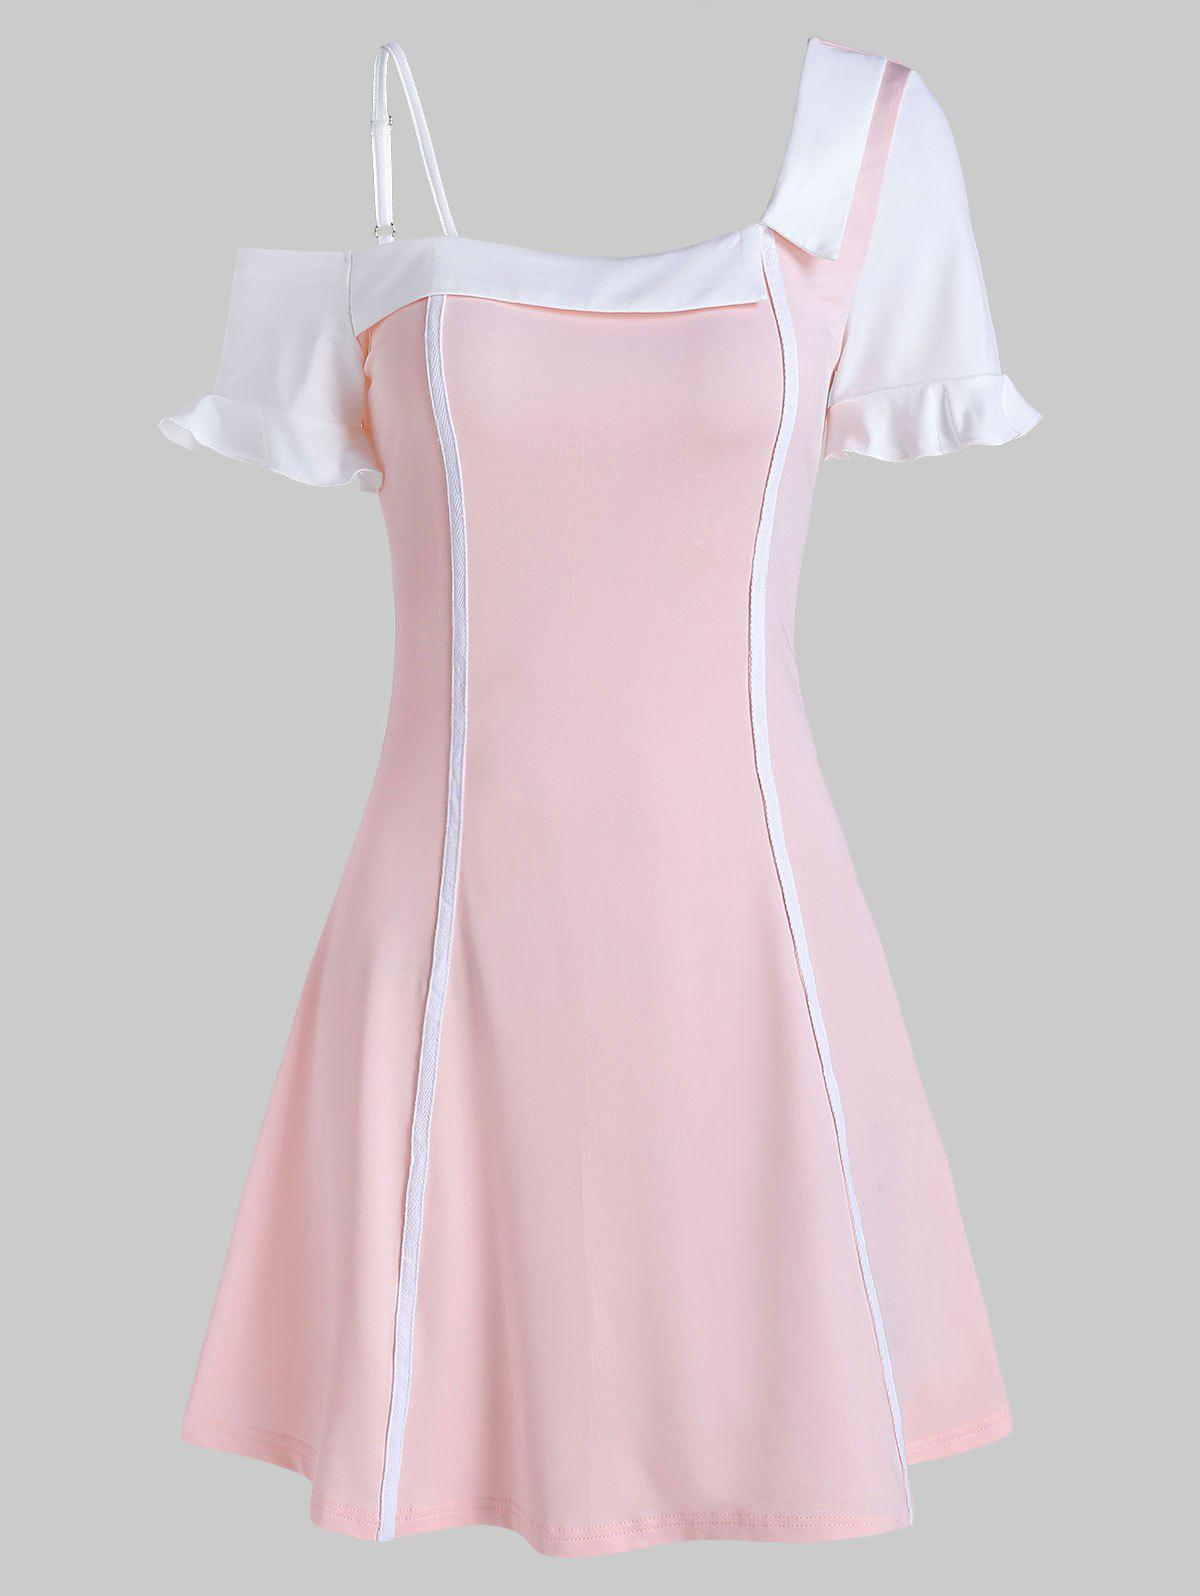 Unique Skew Neck Contrast Color Ruffled Mini Dress